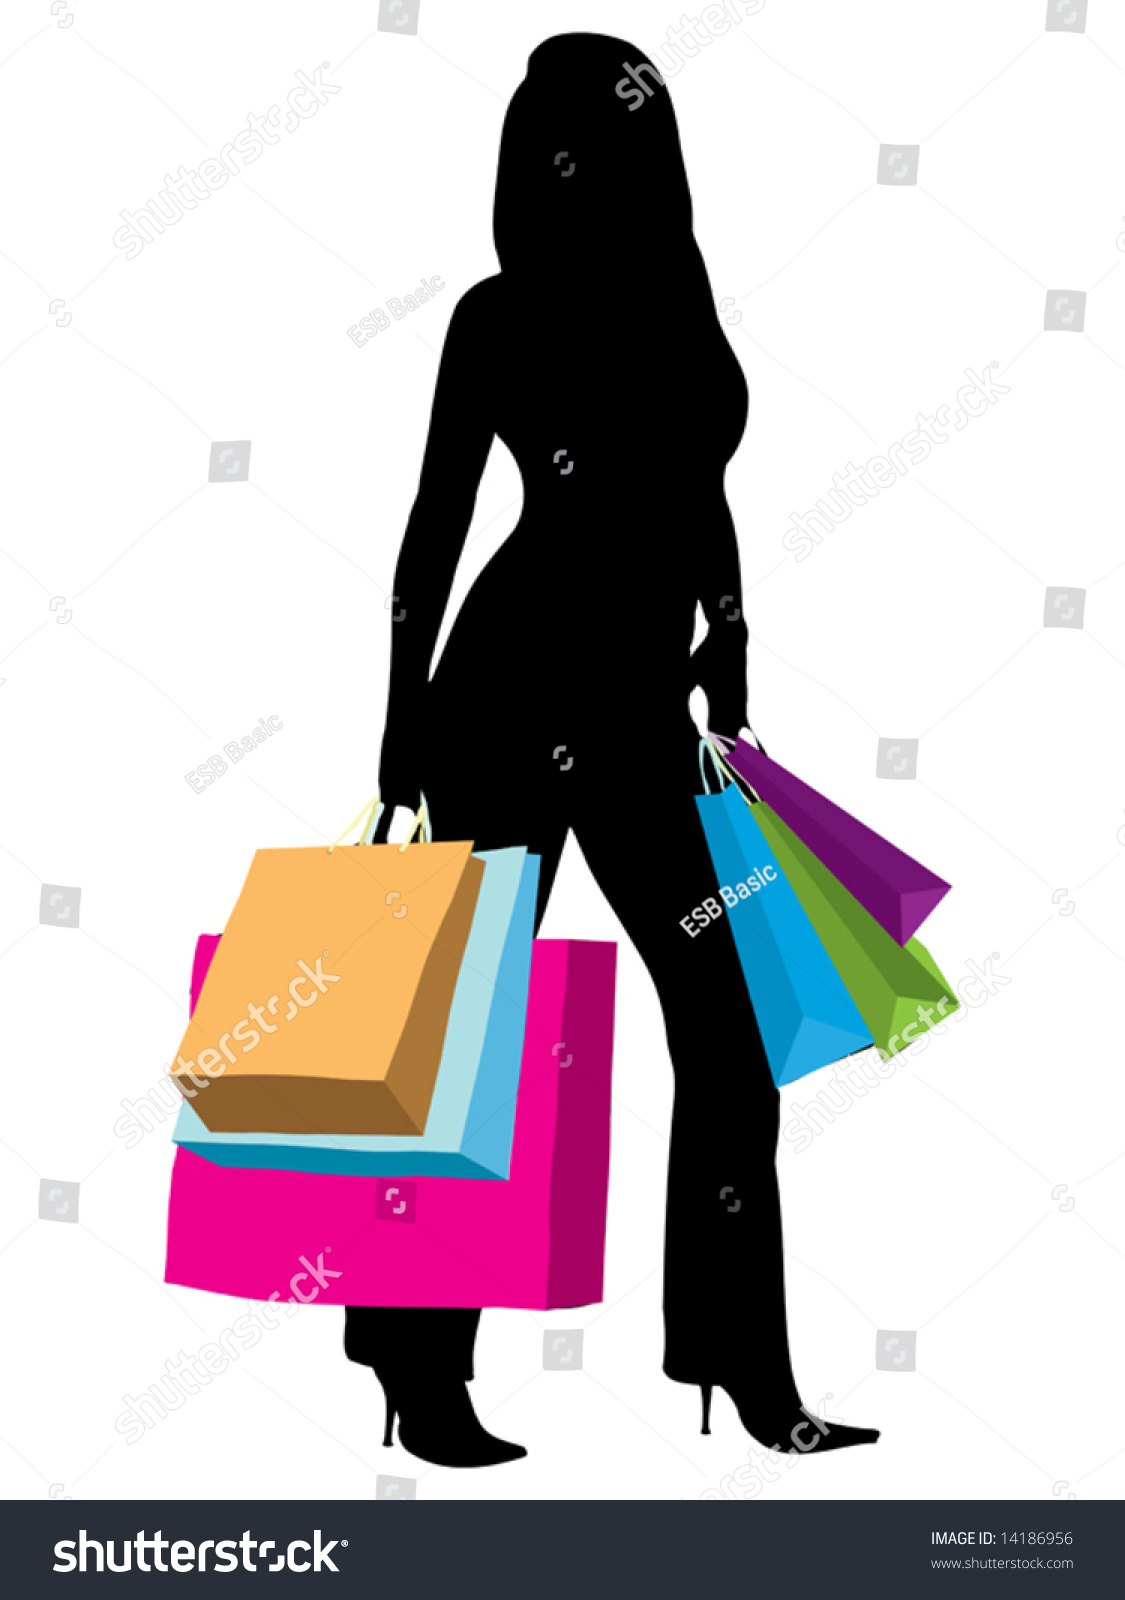 Home Design Cheats For Ipad Woman Shopping Silhouette Woman Silhouette Illustration